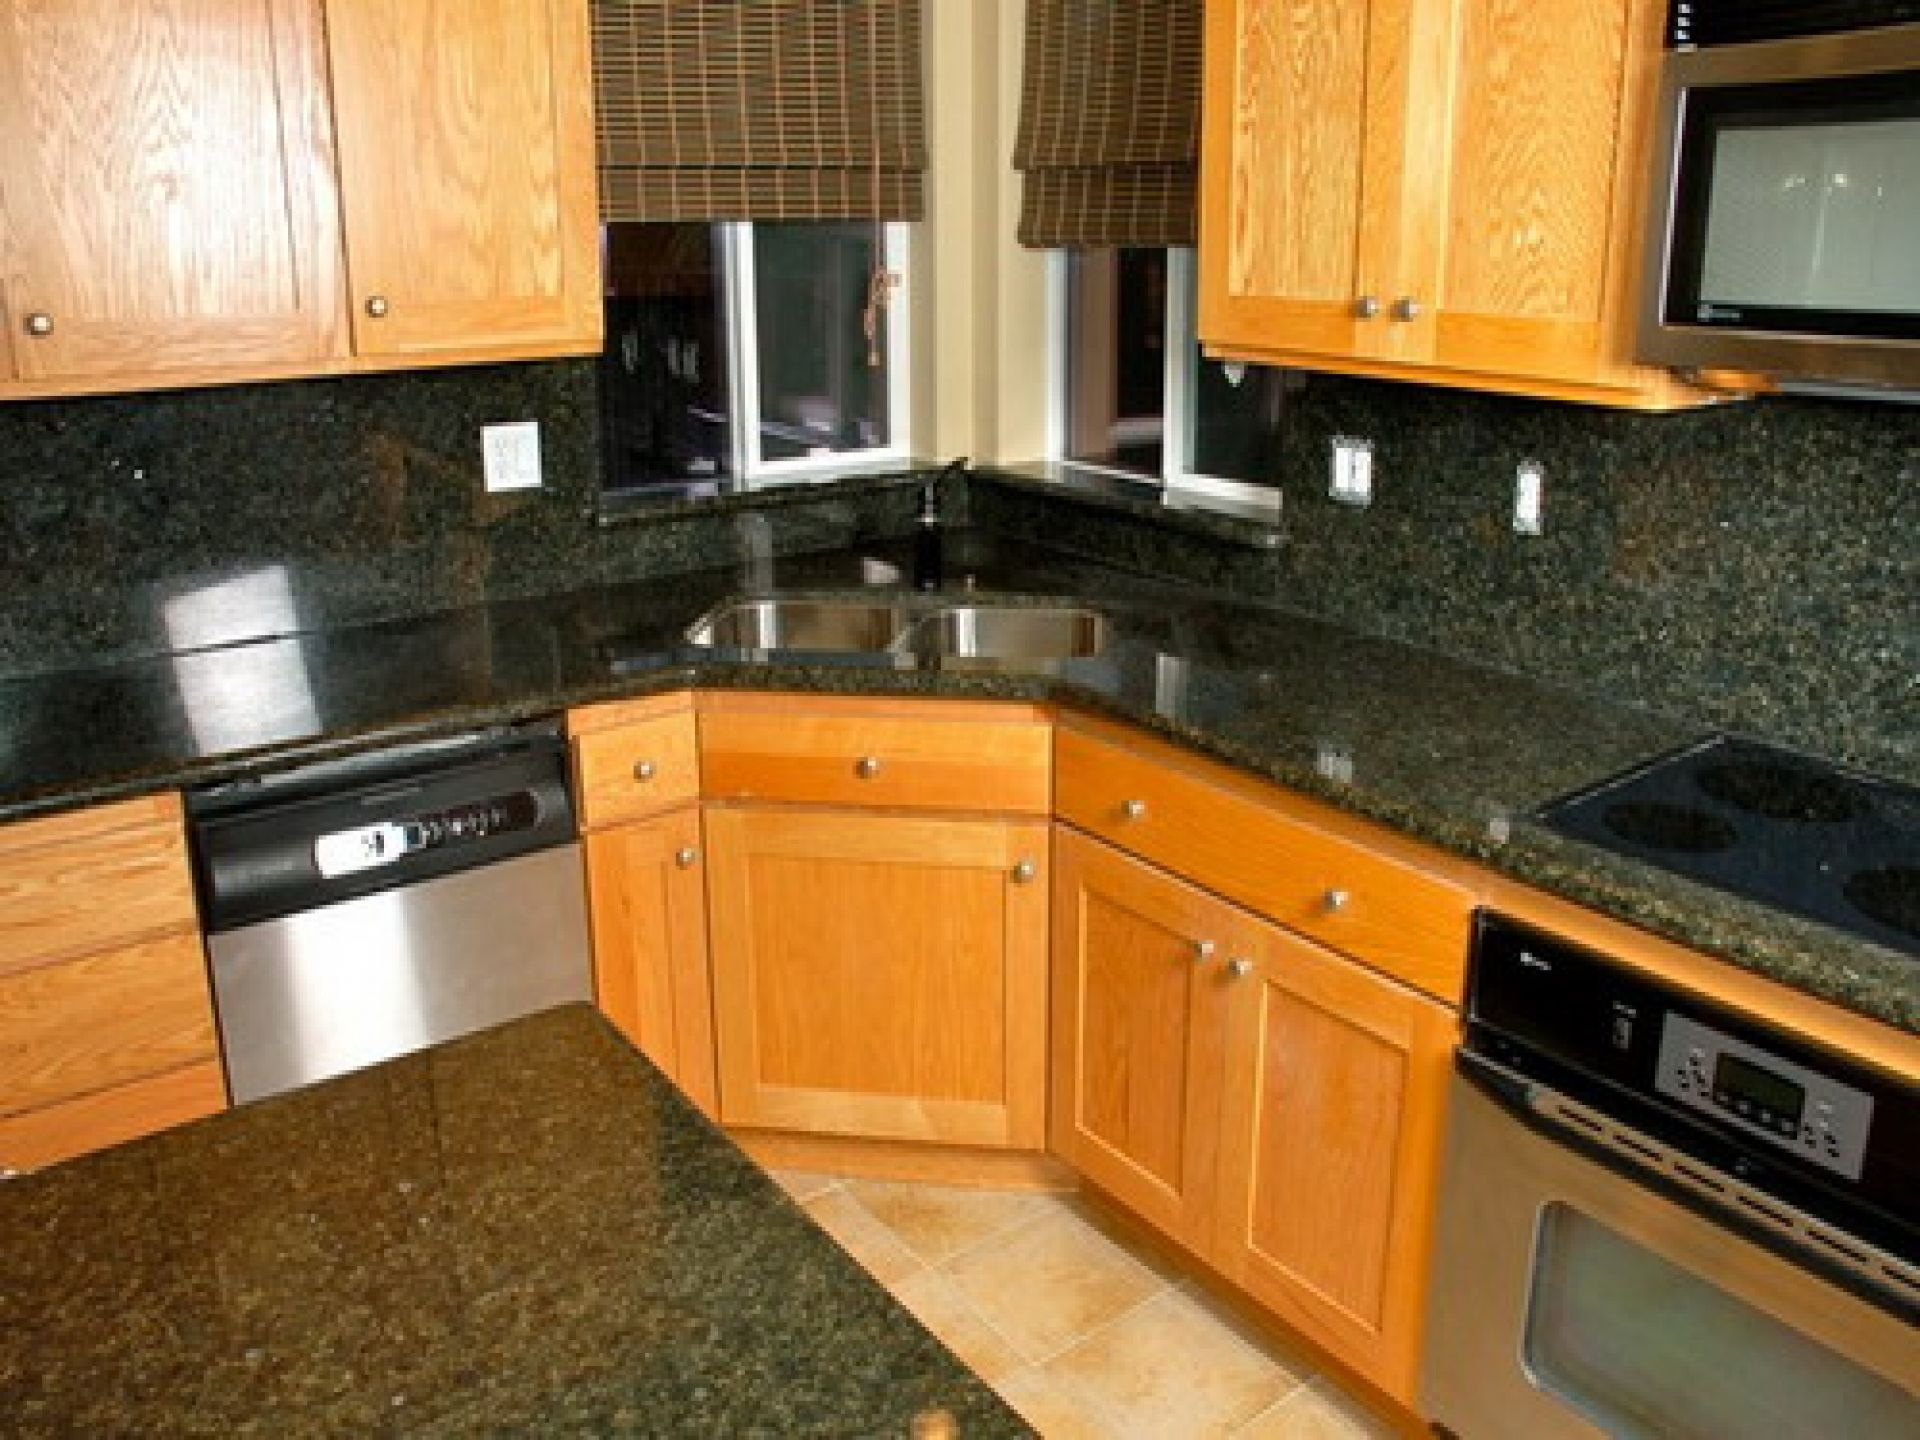 Dark Granite Kitchen Countertops Dark Grey Granite Countertop Connected By Dark Grey Granite